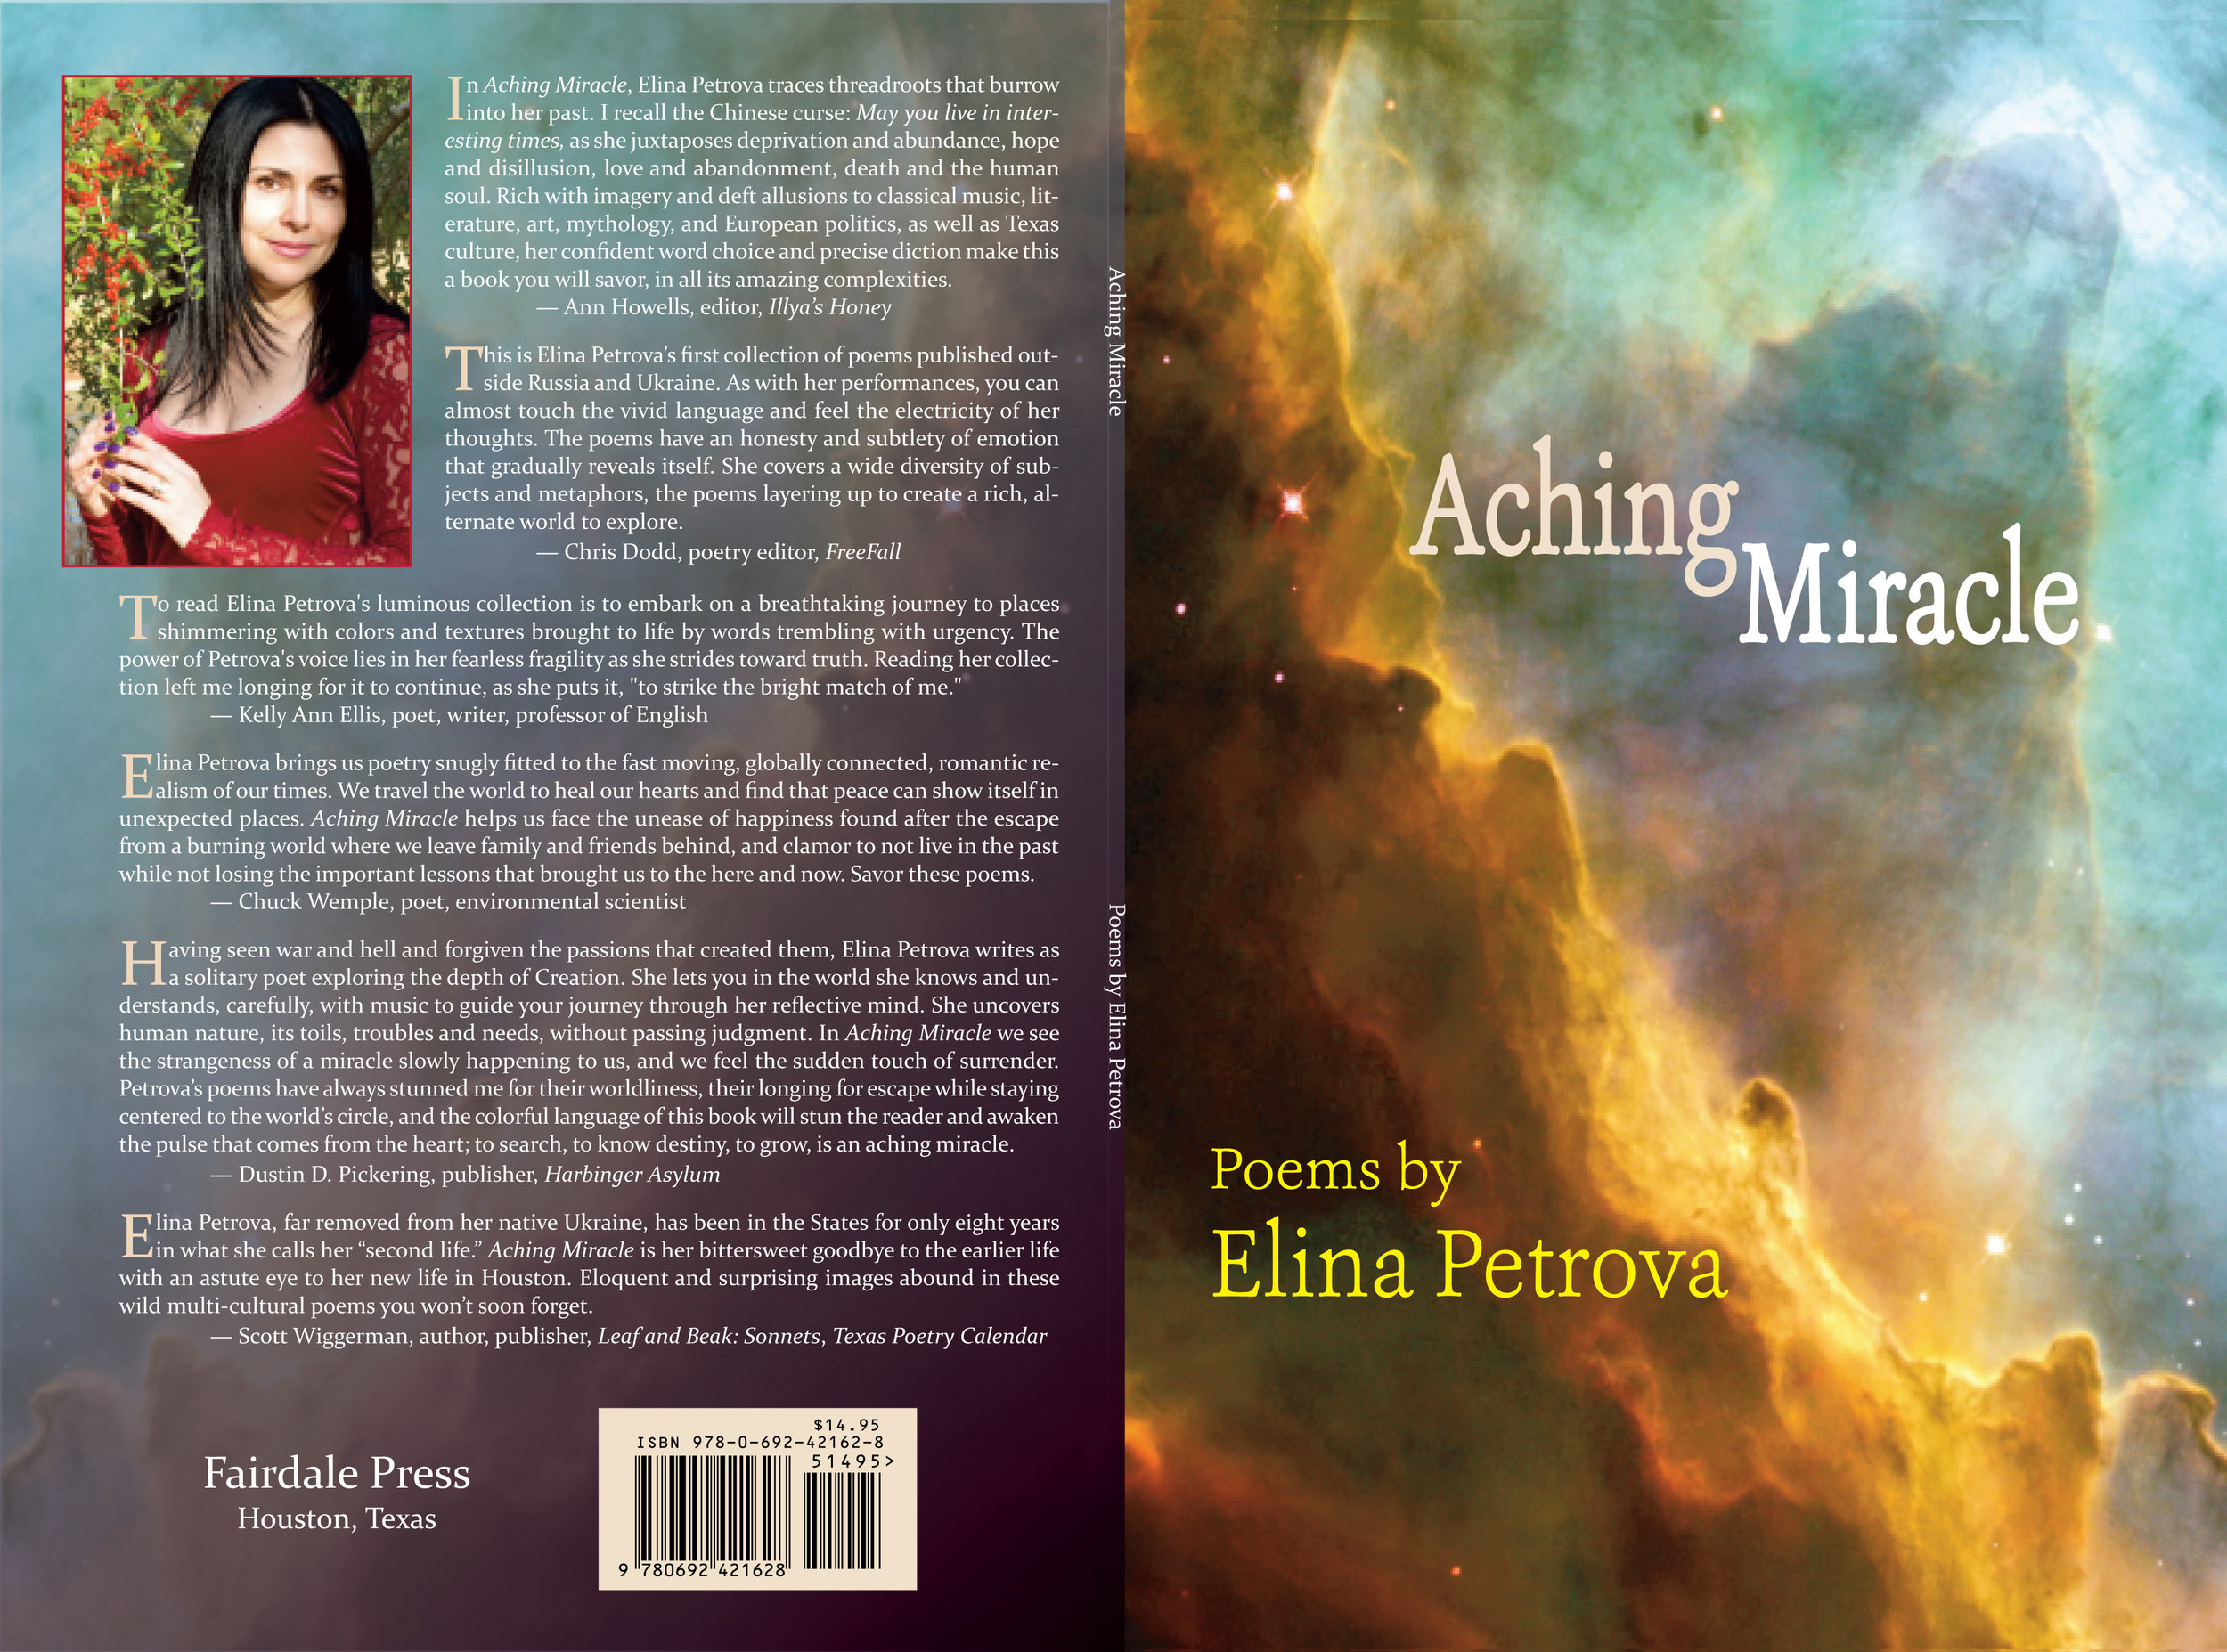 Book2. Aching Miracle. Full Cover.jpg